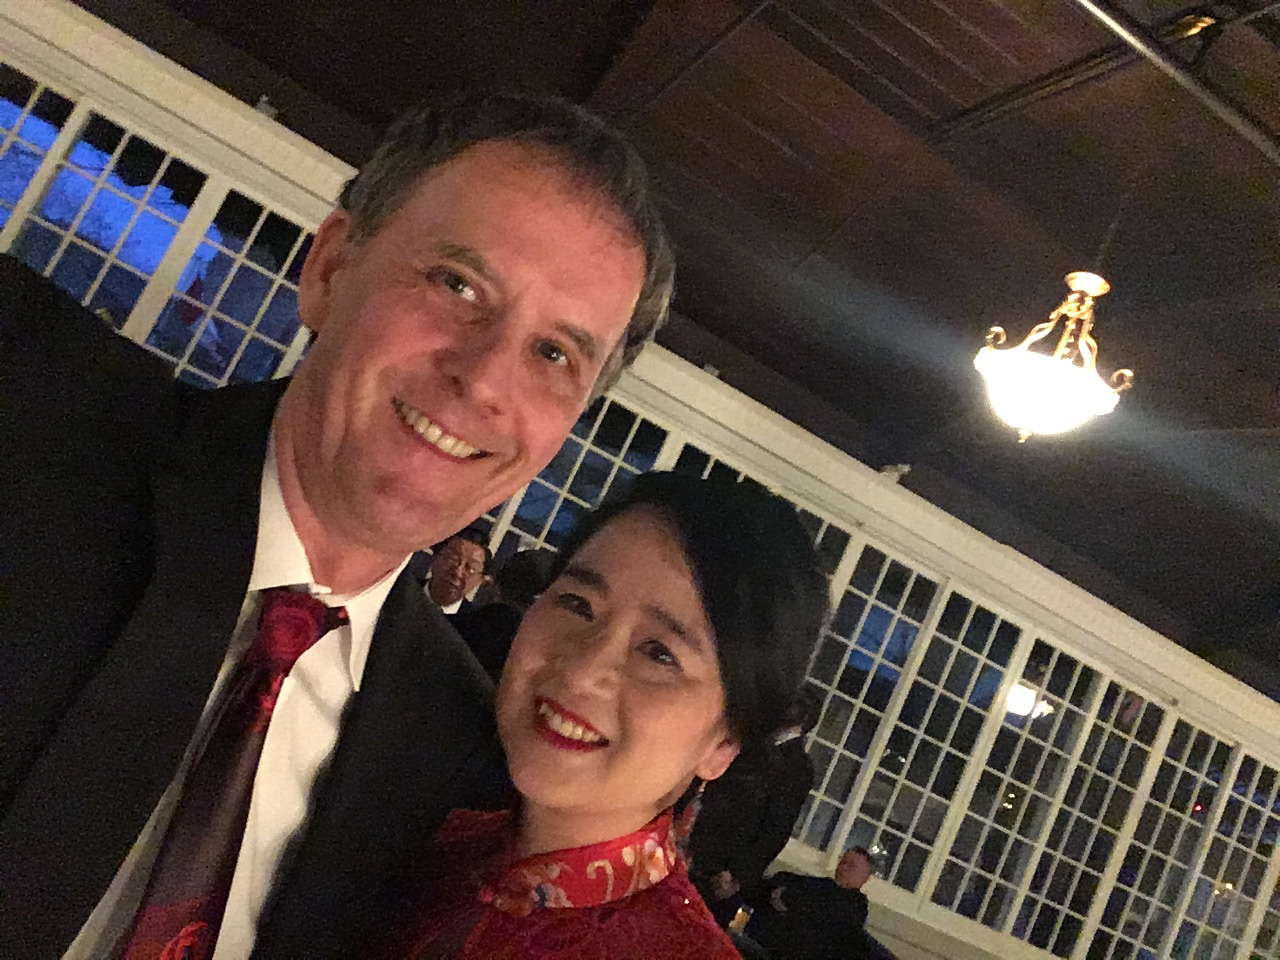 Ms. Lai-King Hum and Mr. Christopher Cassidy